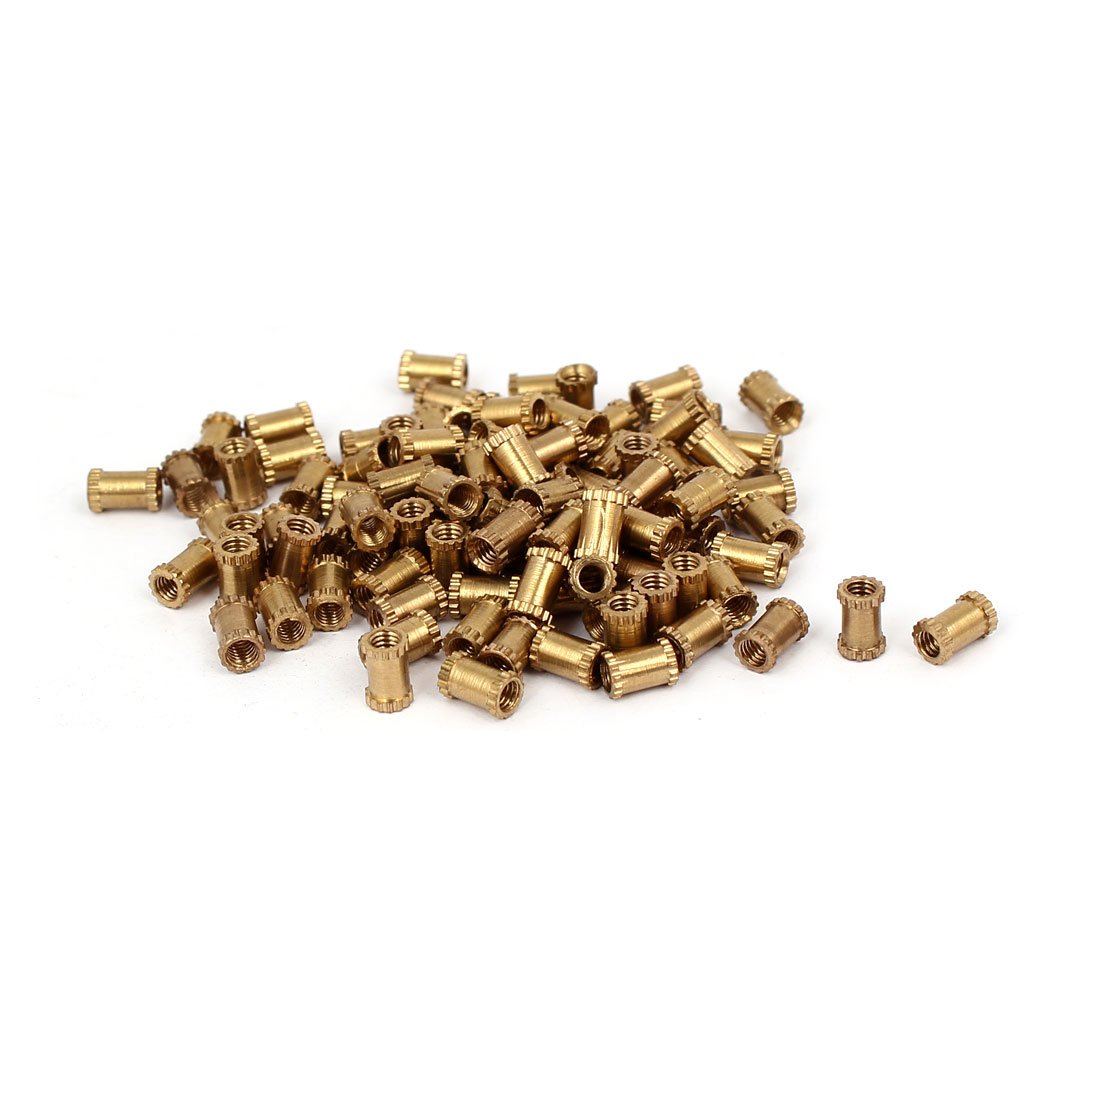 M2.5 x 6mm 3.5mm OD Brass Injection Molding Embedded Knurled Thumb Nut 100PCS